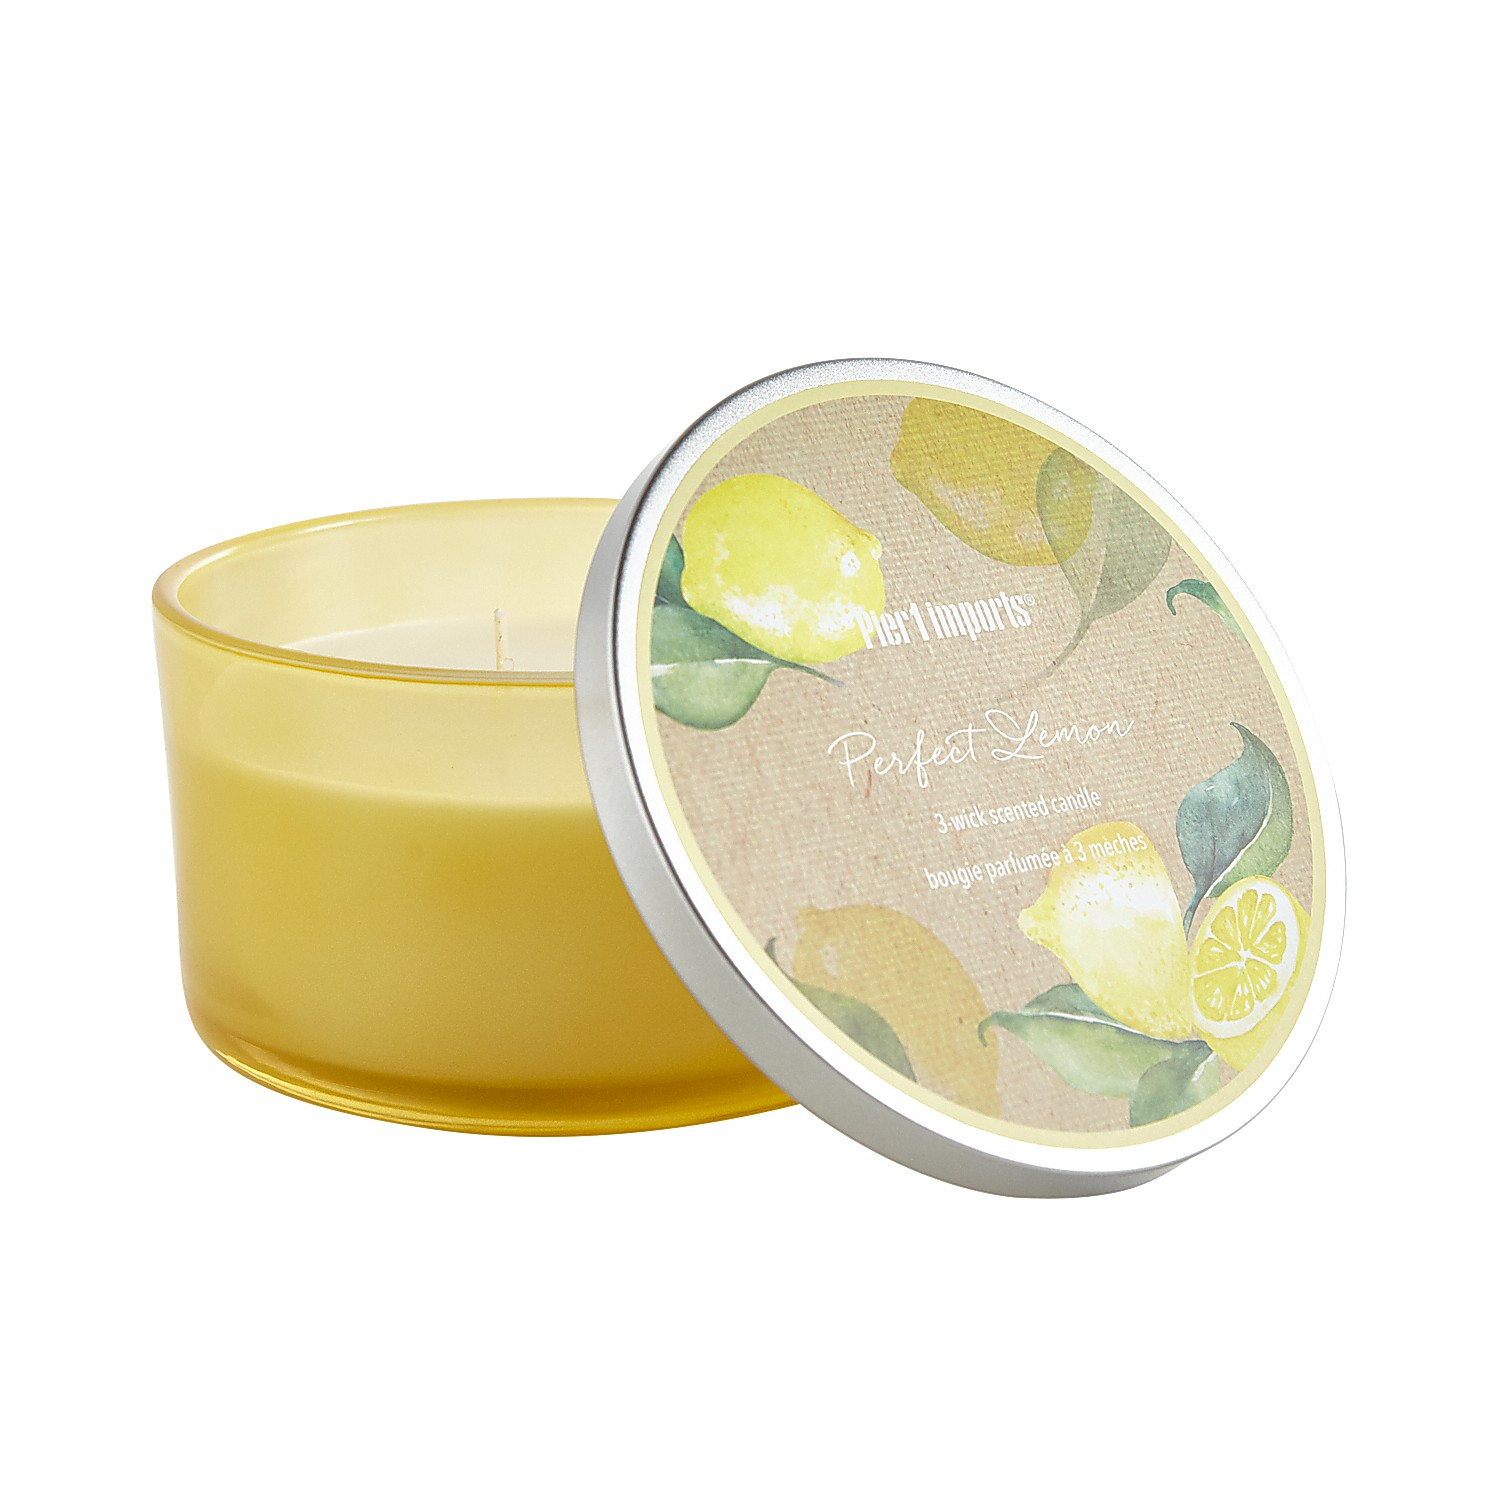 Perfect Lemon Filled 3-Wick Candle